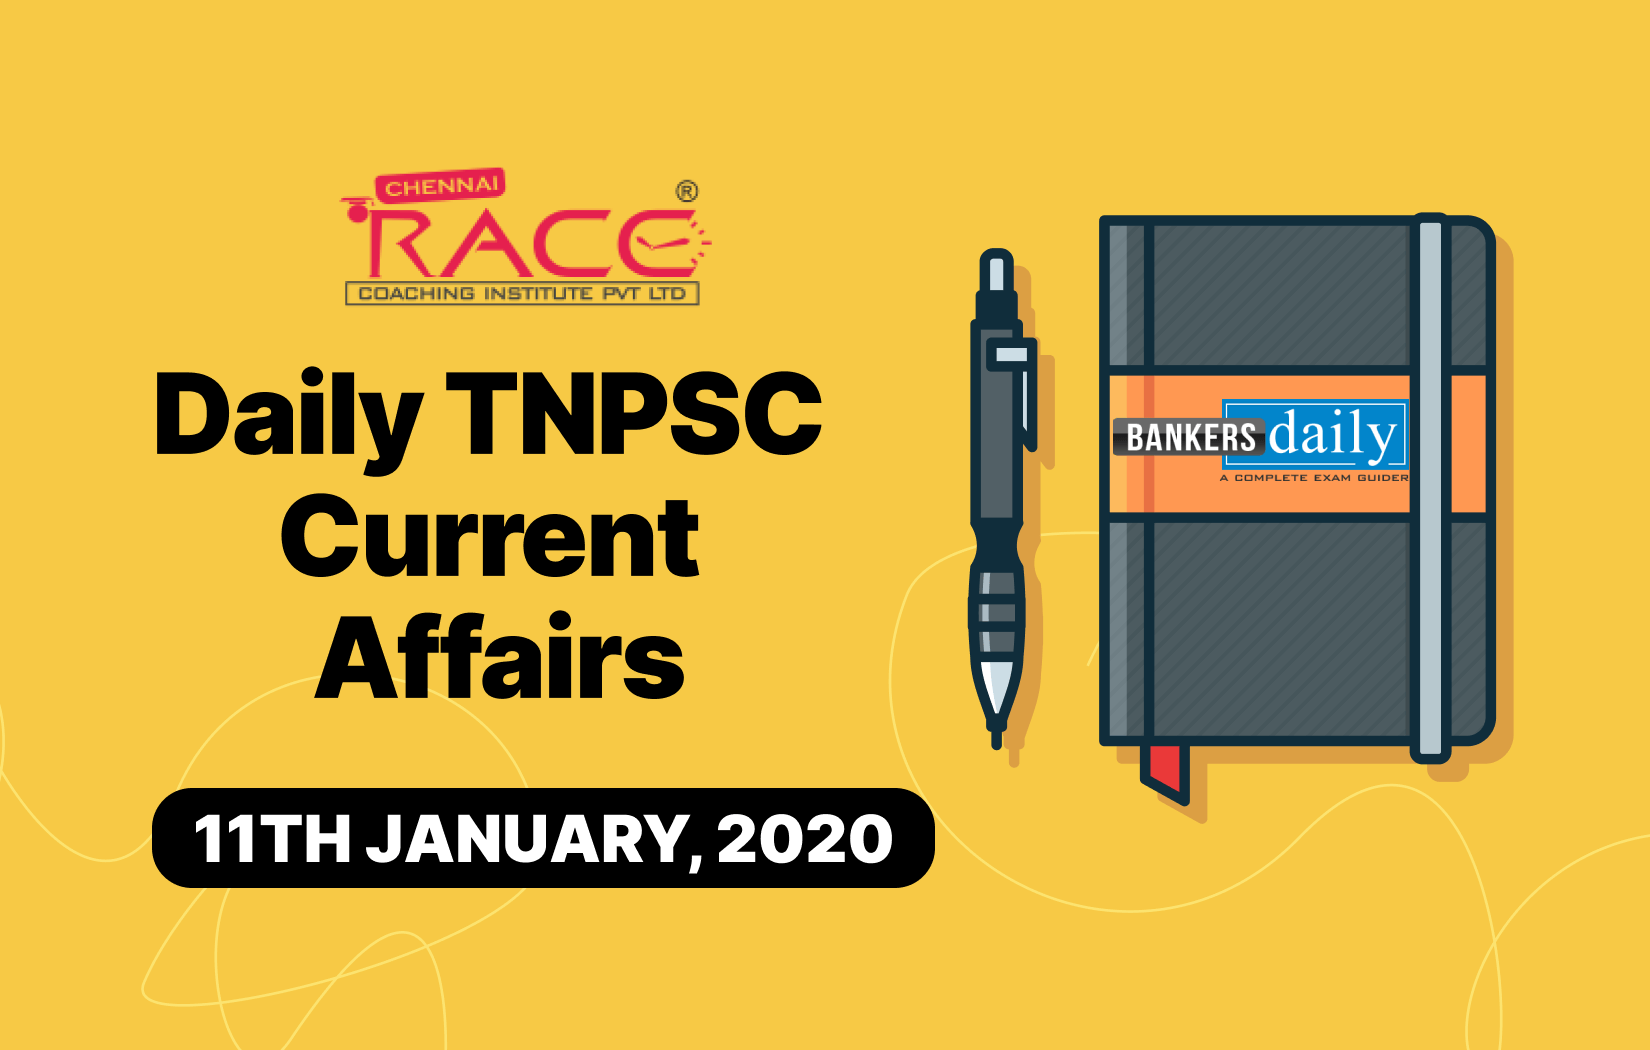 tnpsc_daily_current_affairs_11th_january-2021_tnpsc_bankersdaily_race_institute